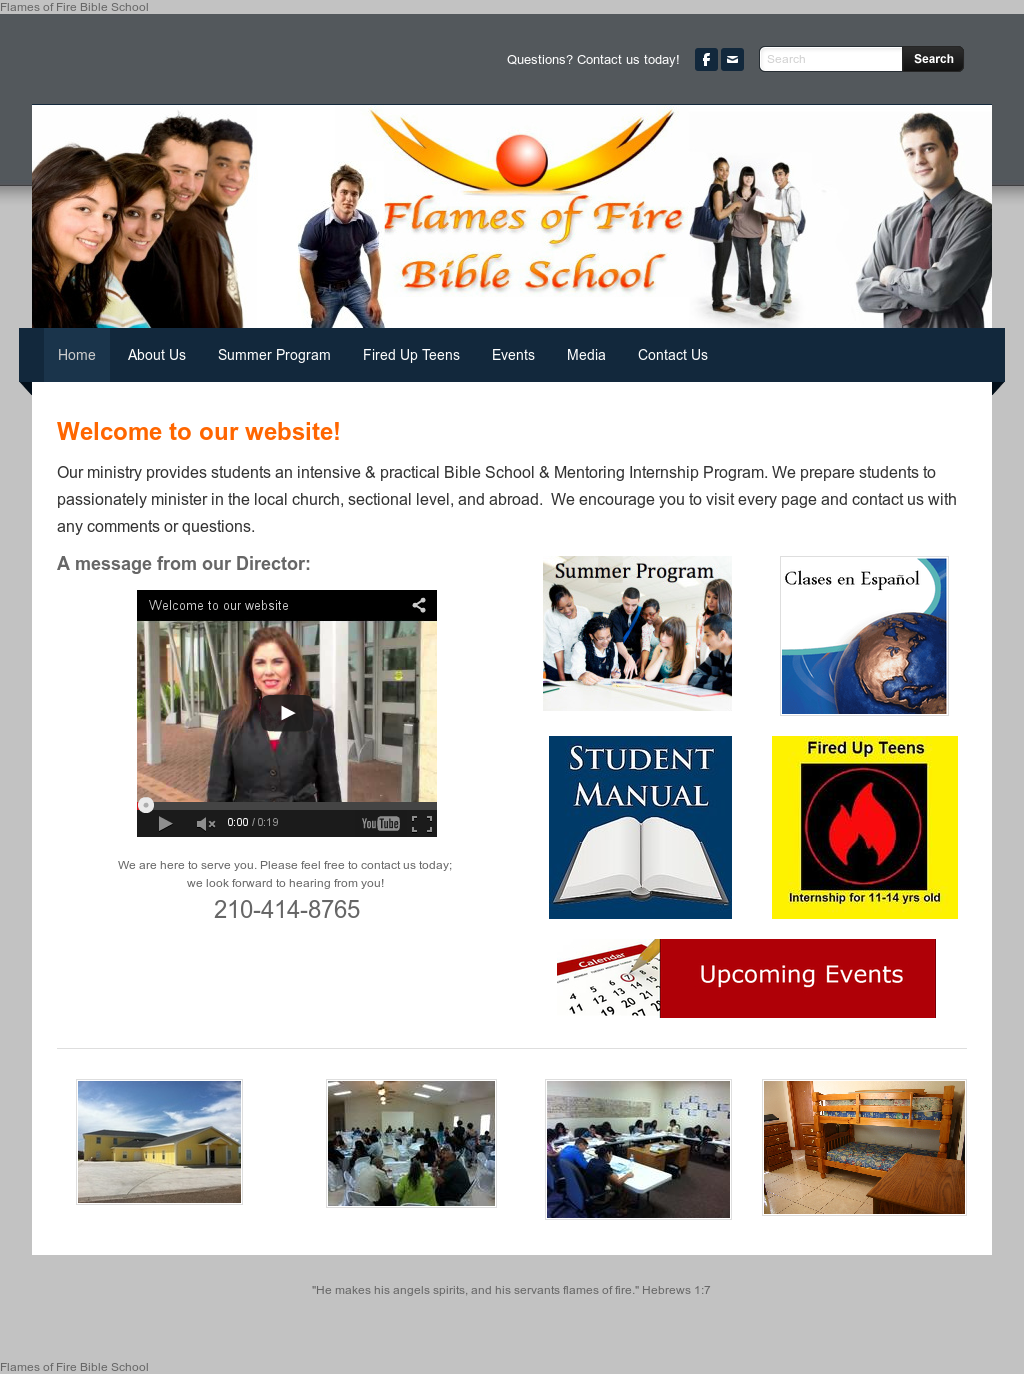 Flames Of Fire Bible School Competitors, Revenue and